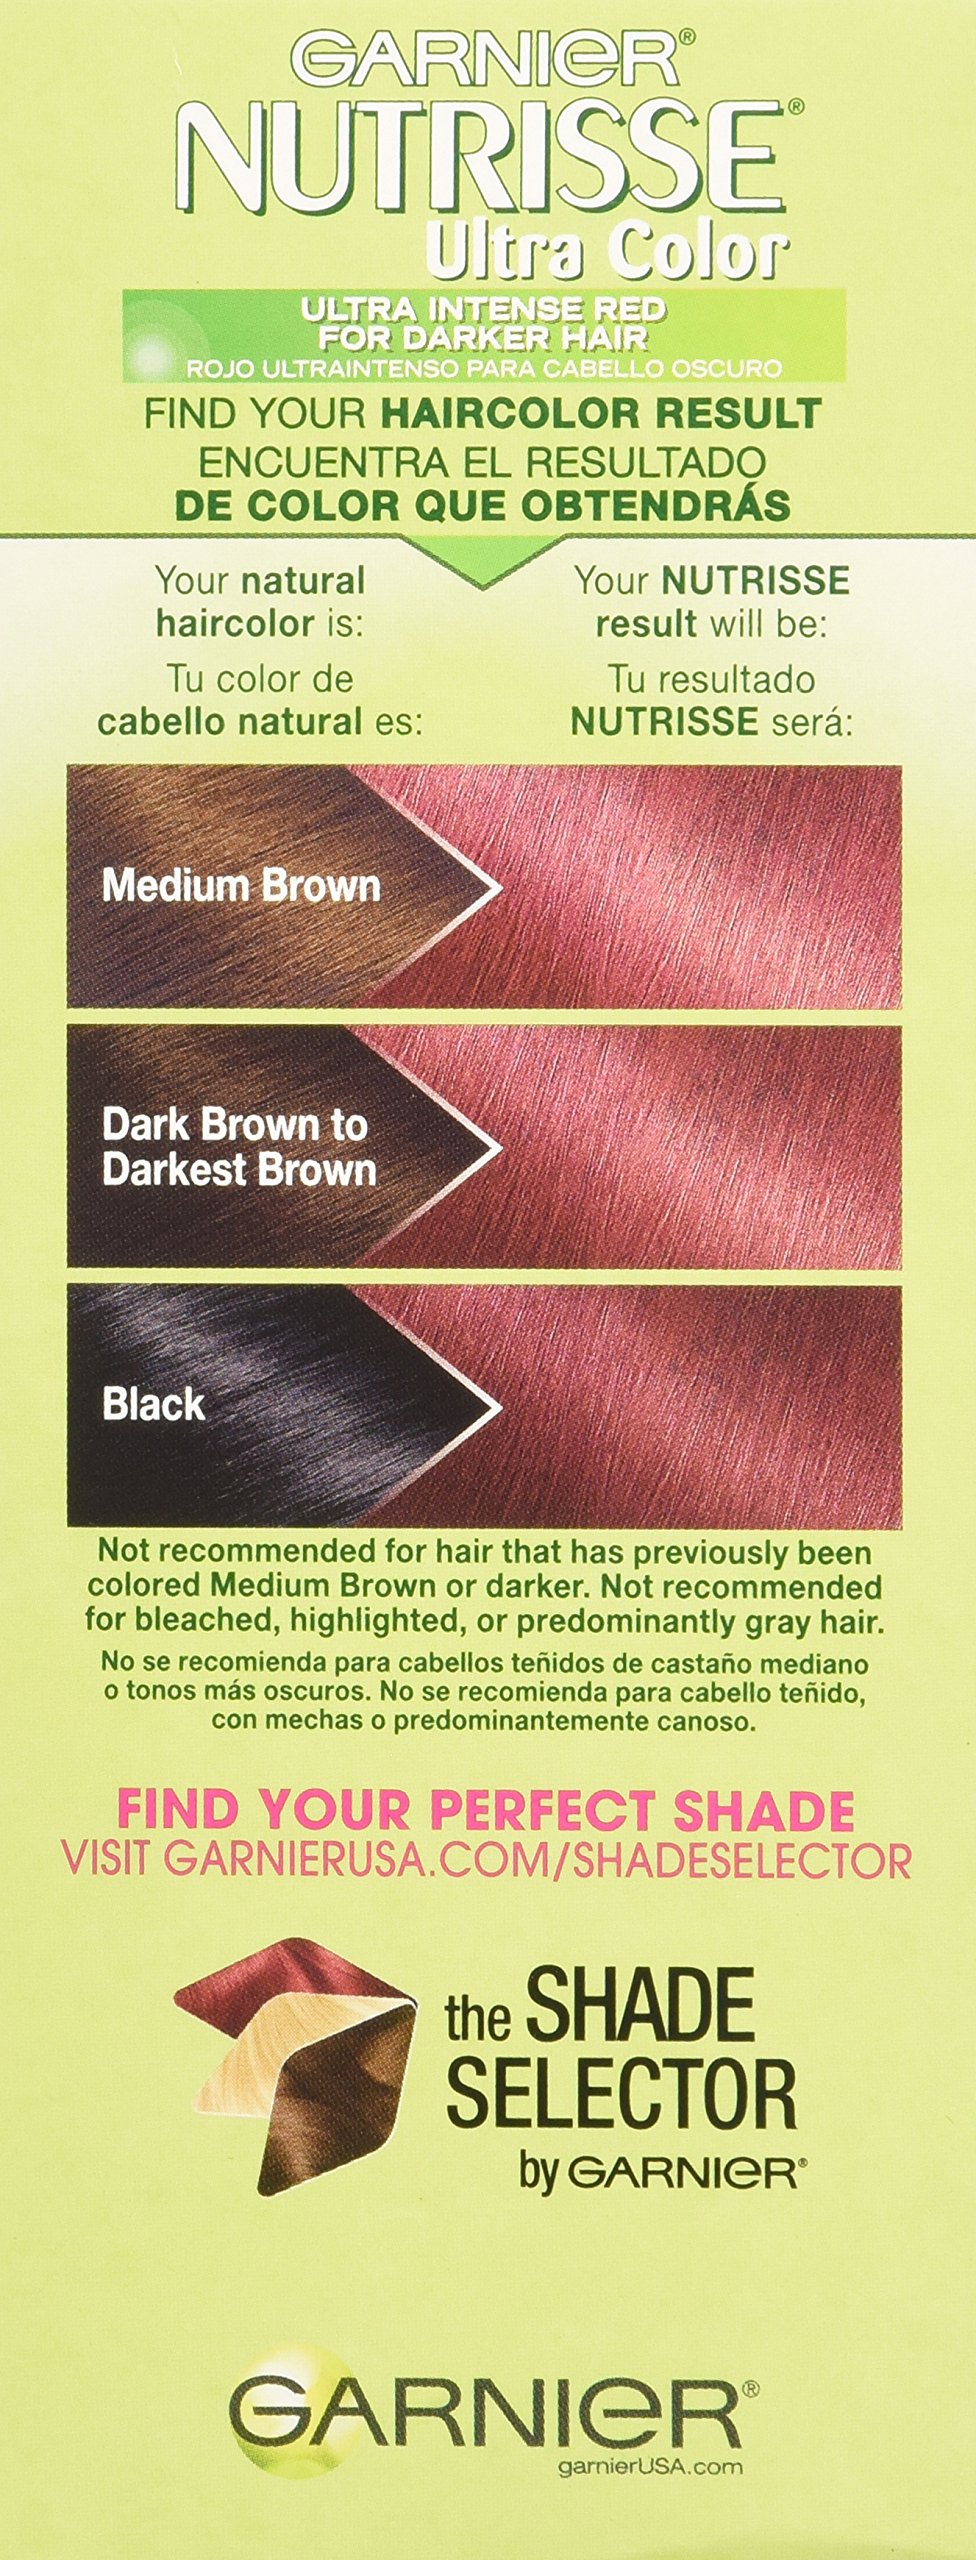 Garnier Nutrisse Ultra Color Nourishing Hair Color Creme, Light Intense Auburn, 3 Count  (Packaging May Vary) by Garnier (Image #5)